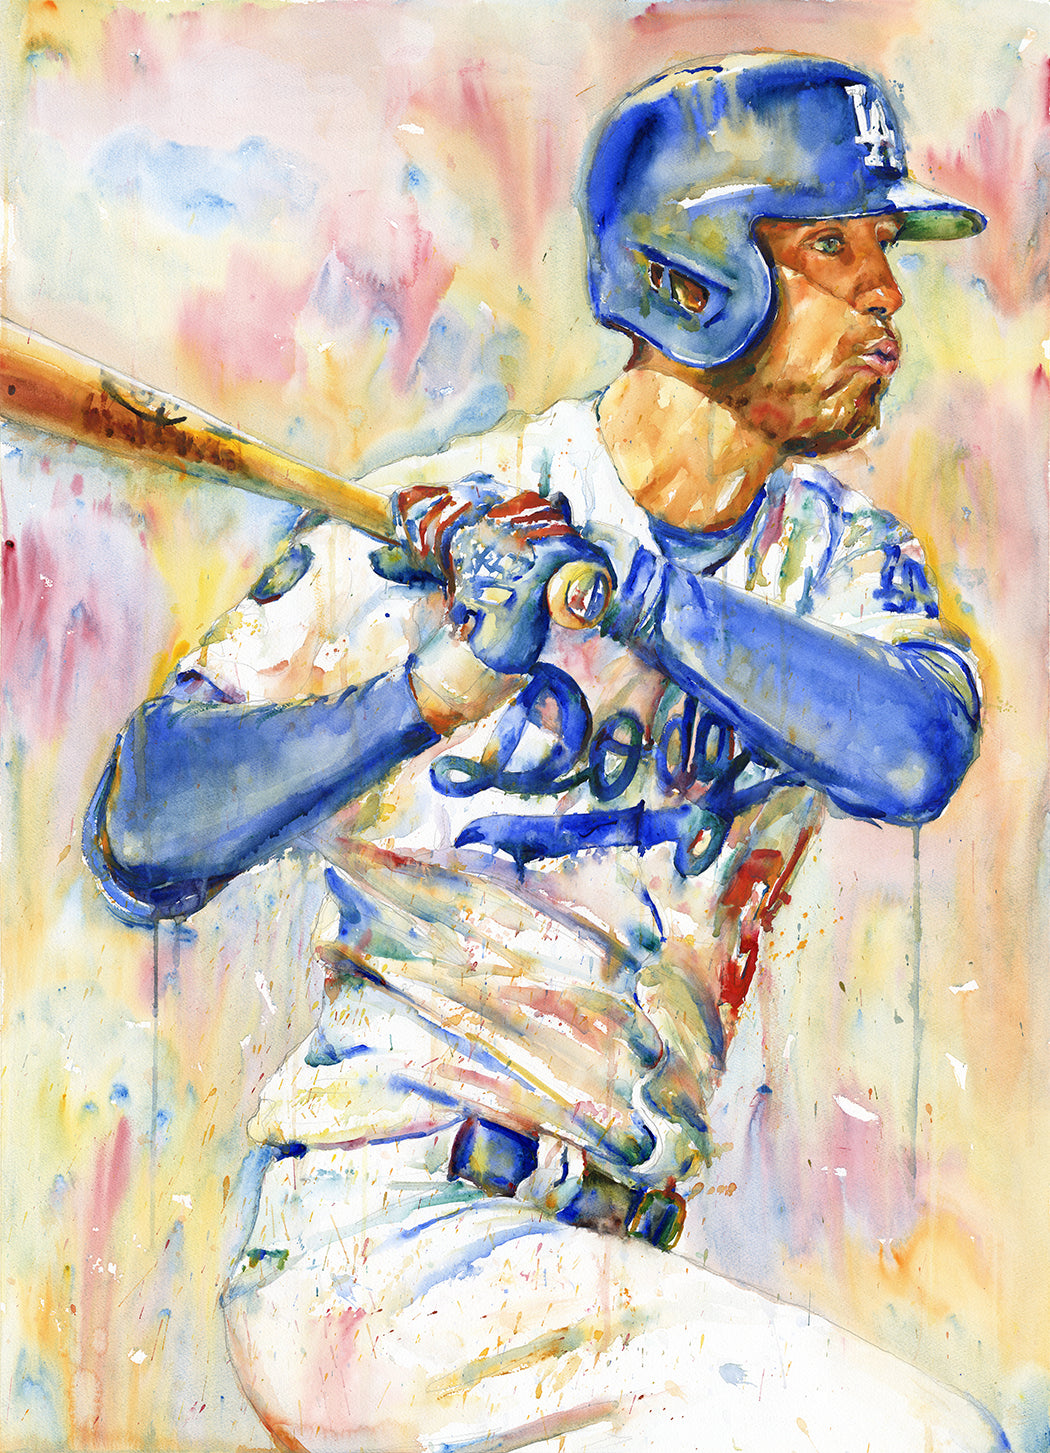 Cody Bellinger - Original Topps Watercolor painting